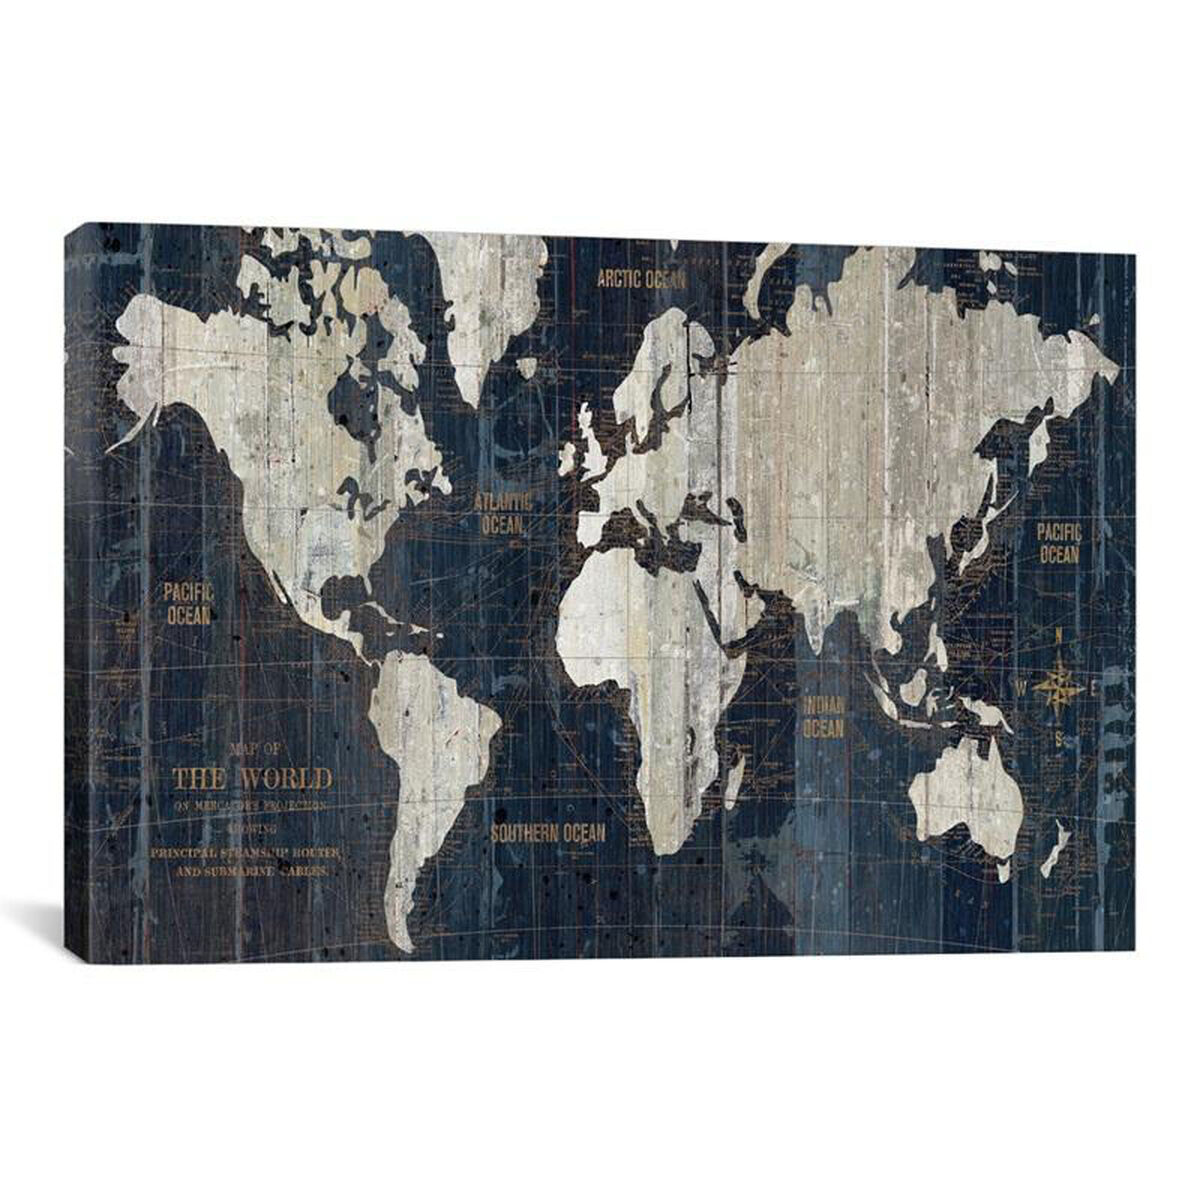 Wrapped canvas artwork bizchair our old world map blue by wild apple portfolio gallery wrapped canvas artwork is on sale gumiabroncs Image collections